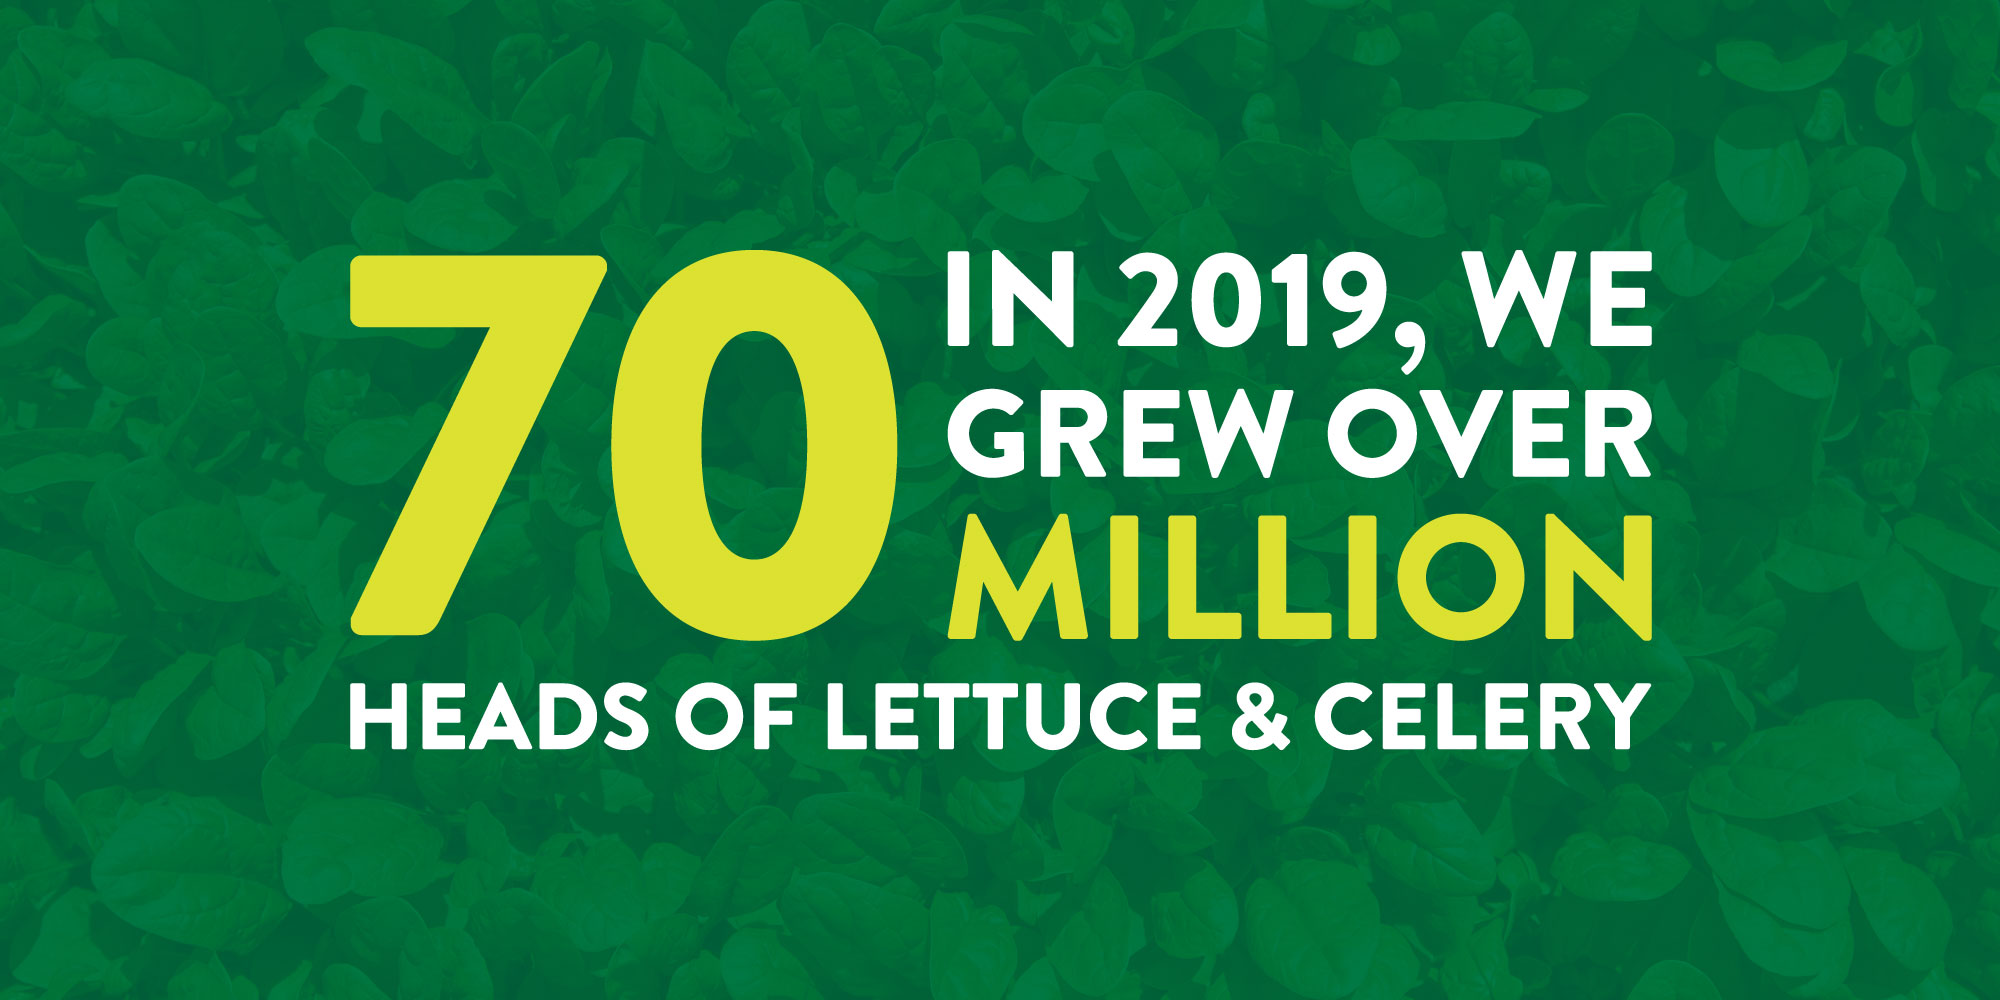 In 2019, we grew over 70 million heads of lettuce & celery